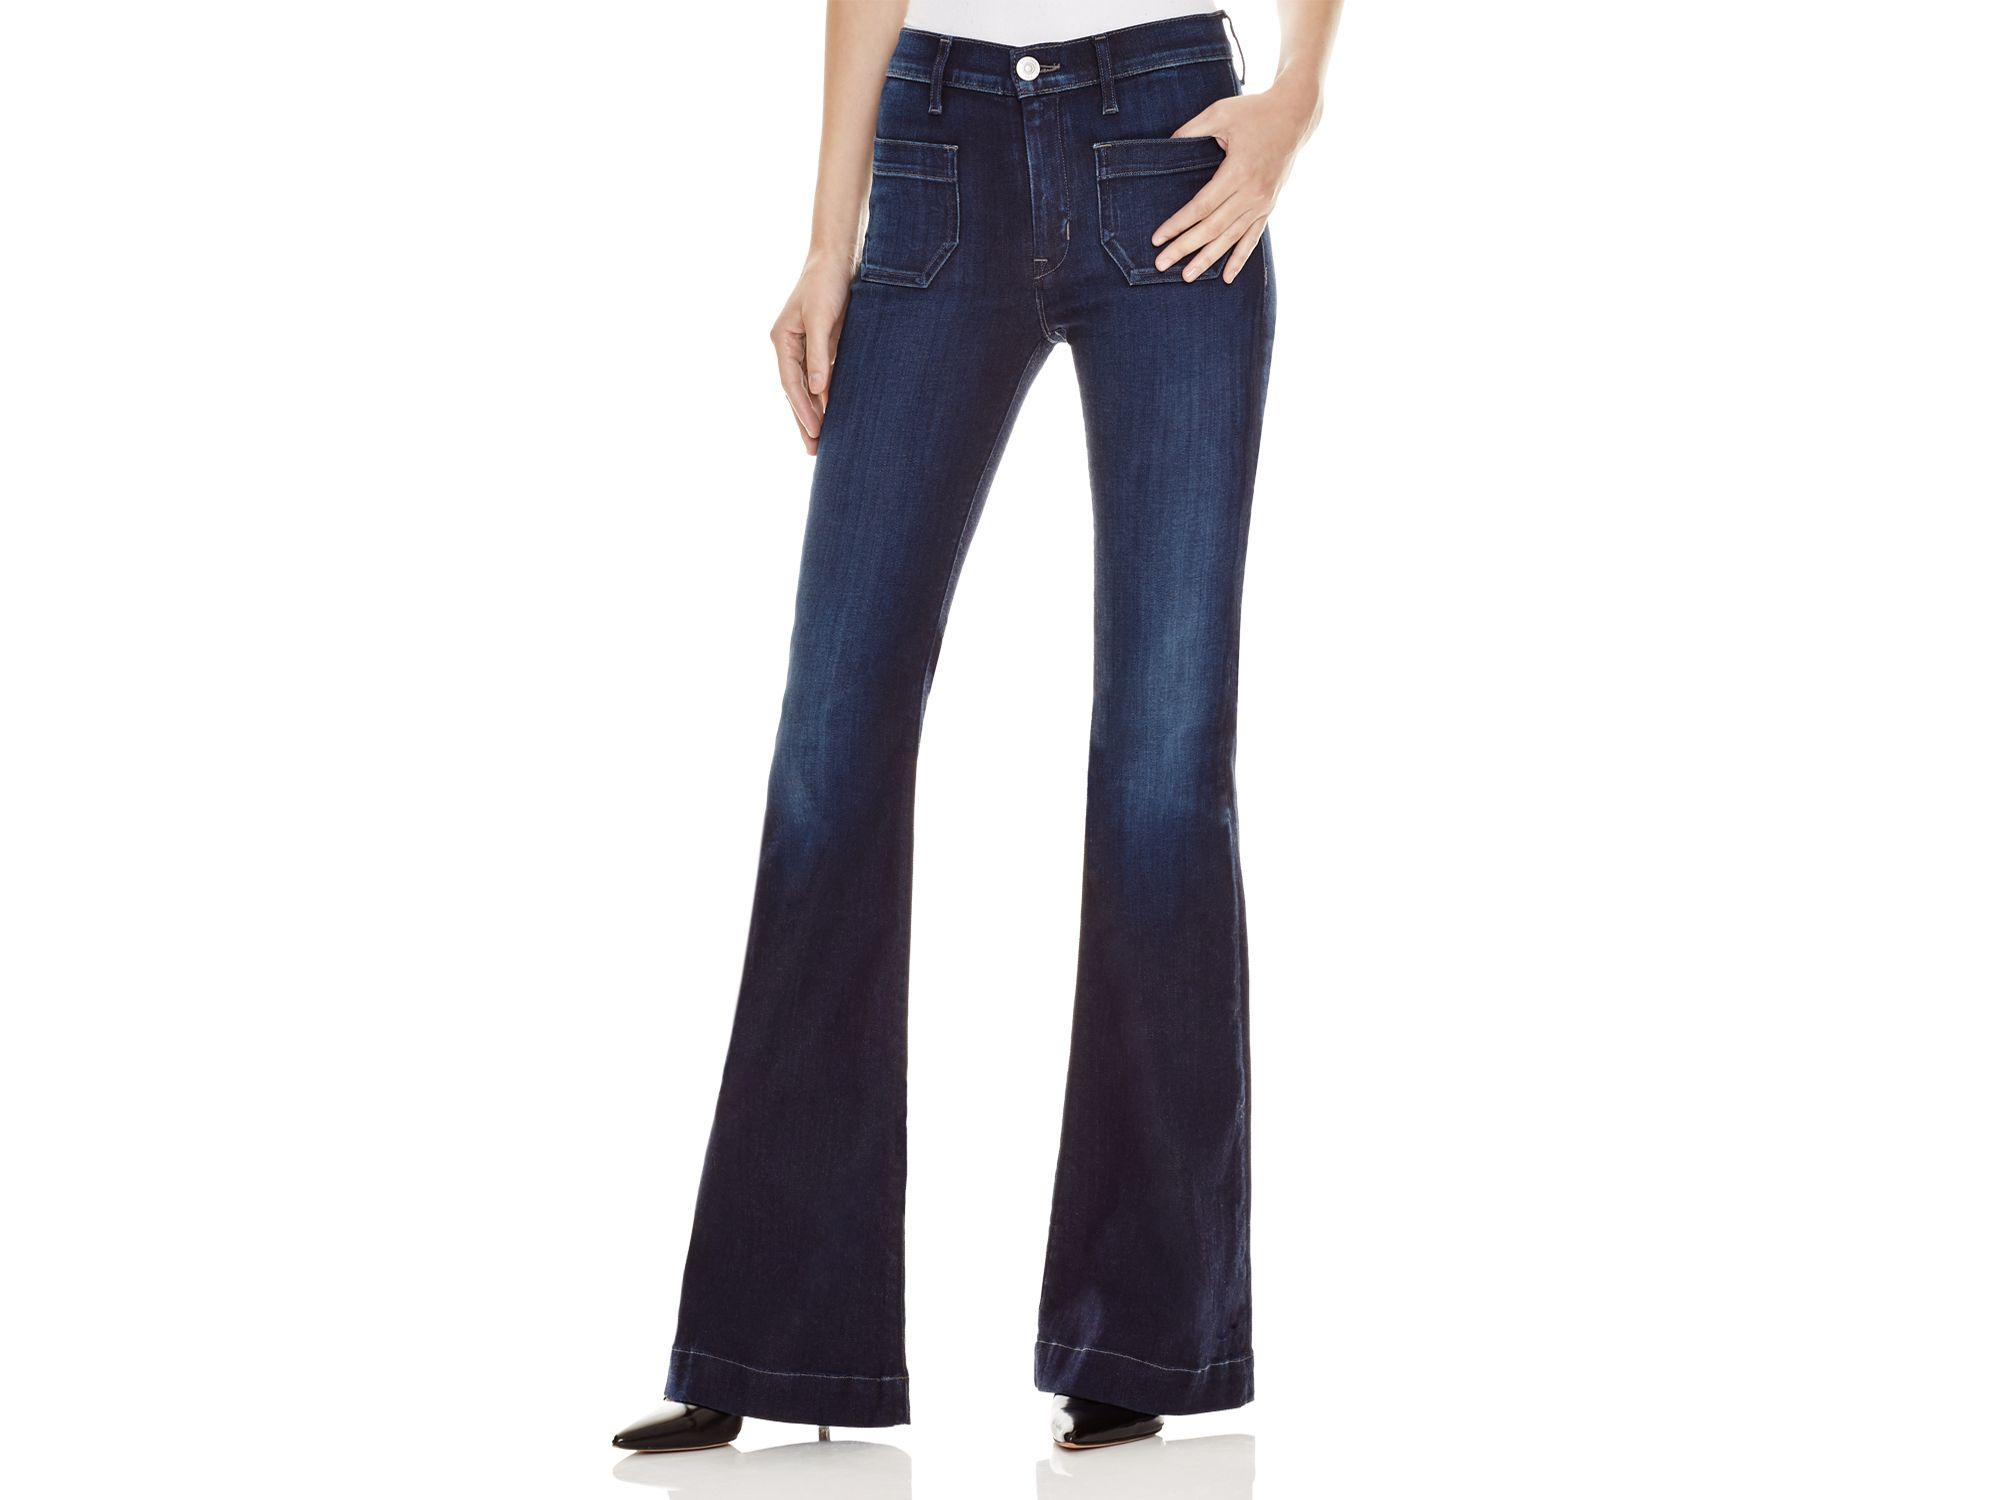 dc394dc0334 Hudson Jeans Taylor High Rise Flare Jeans In Rogue Waves in Blue - Lyst